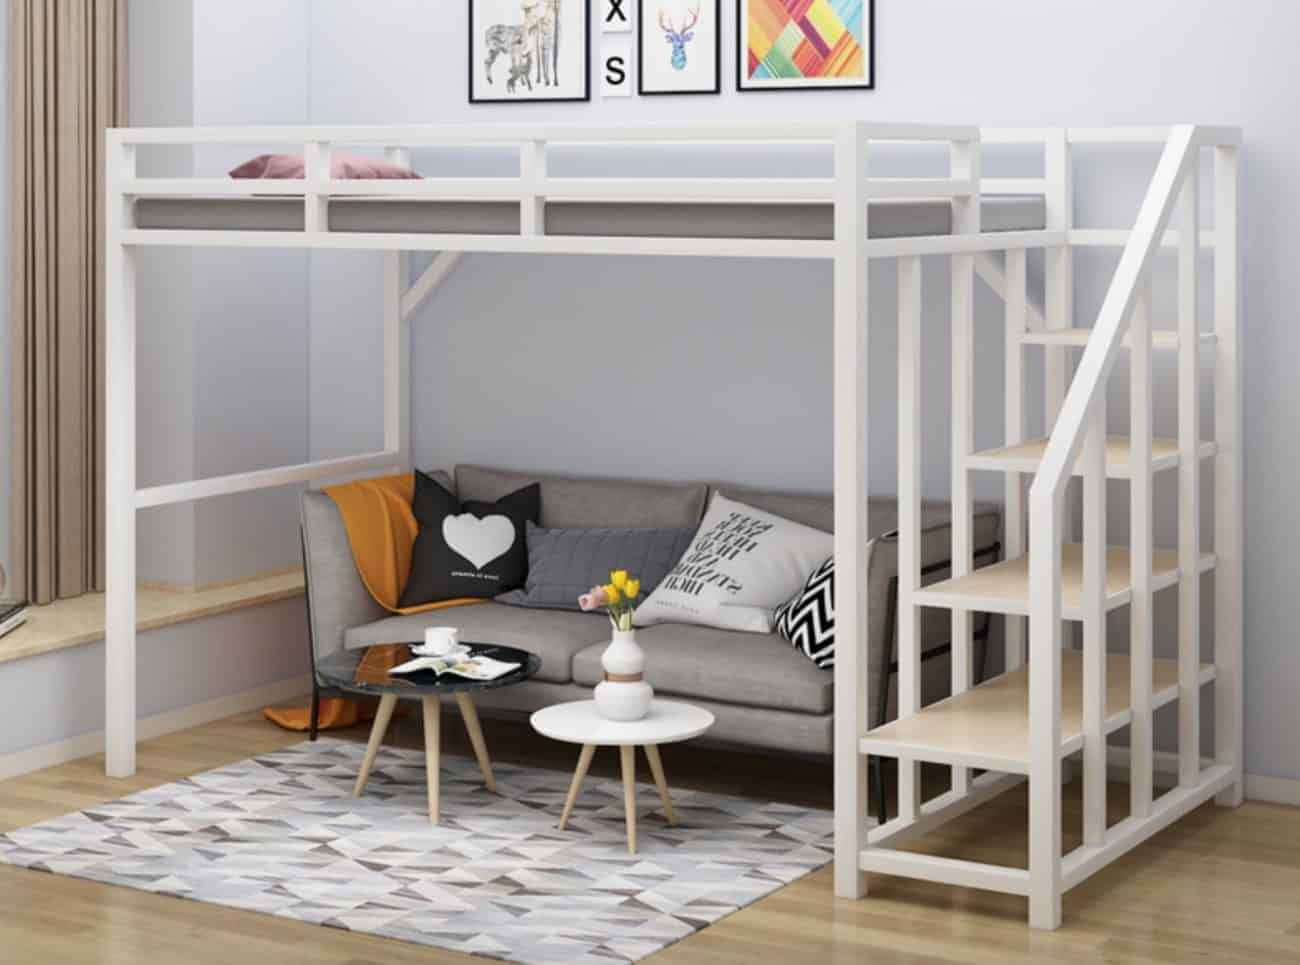 How to Choose the Best Loft Beds